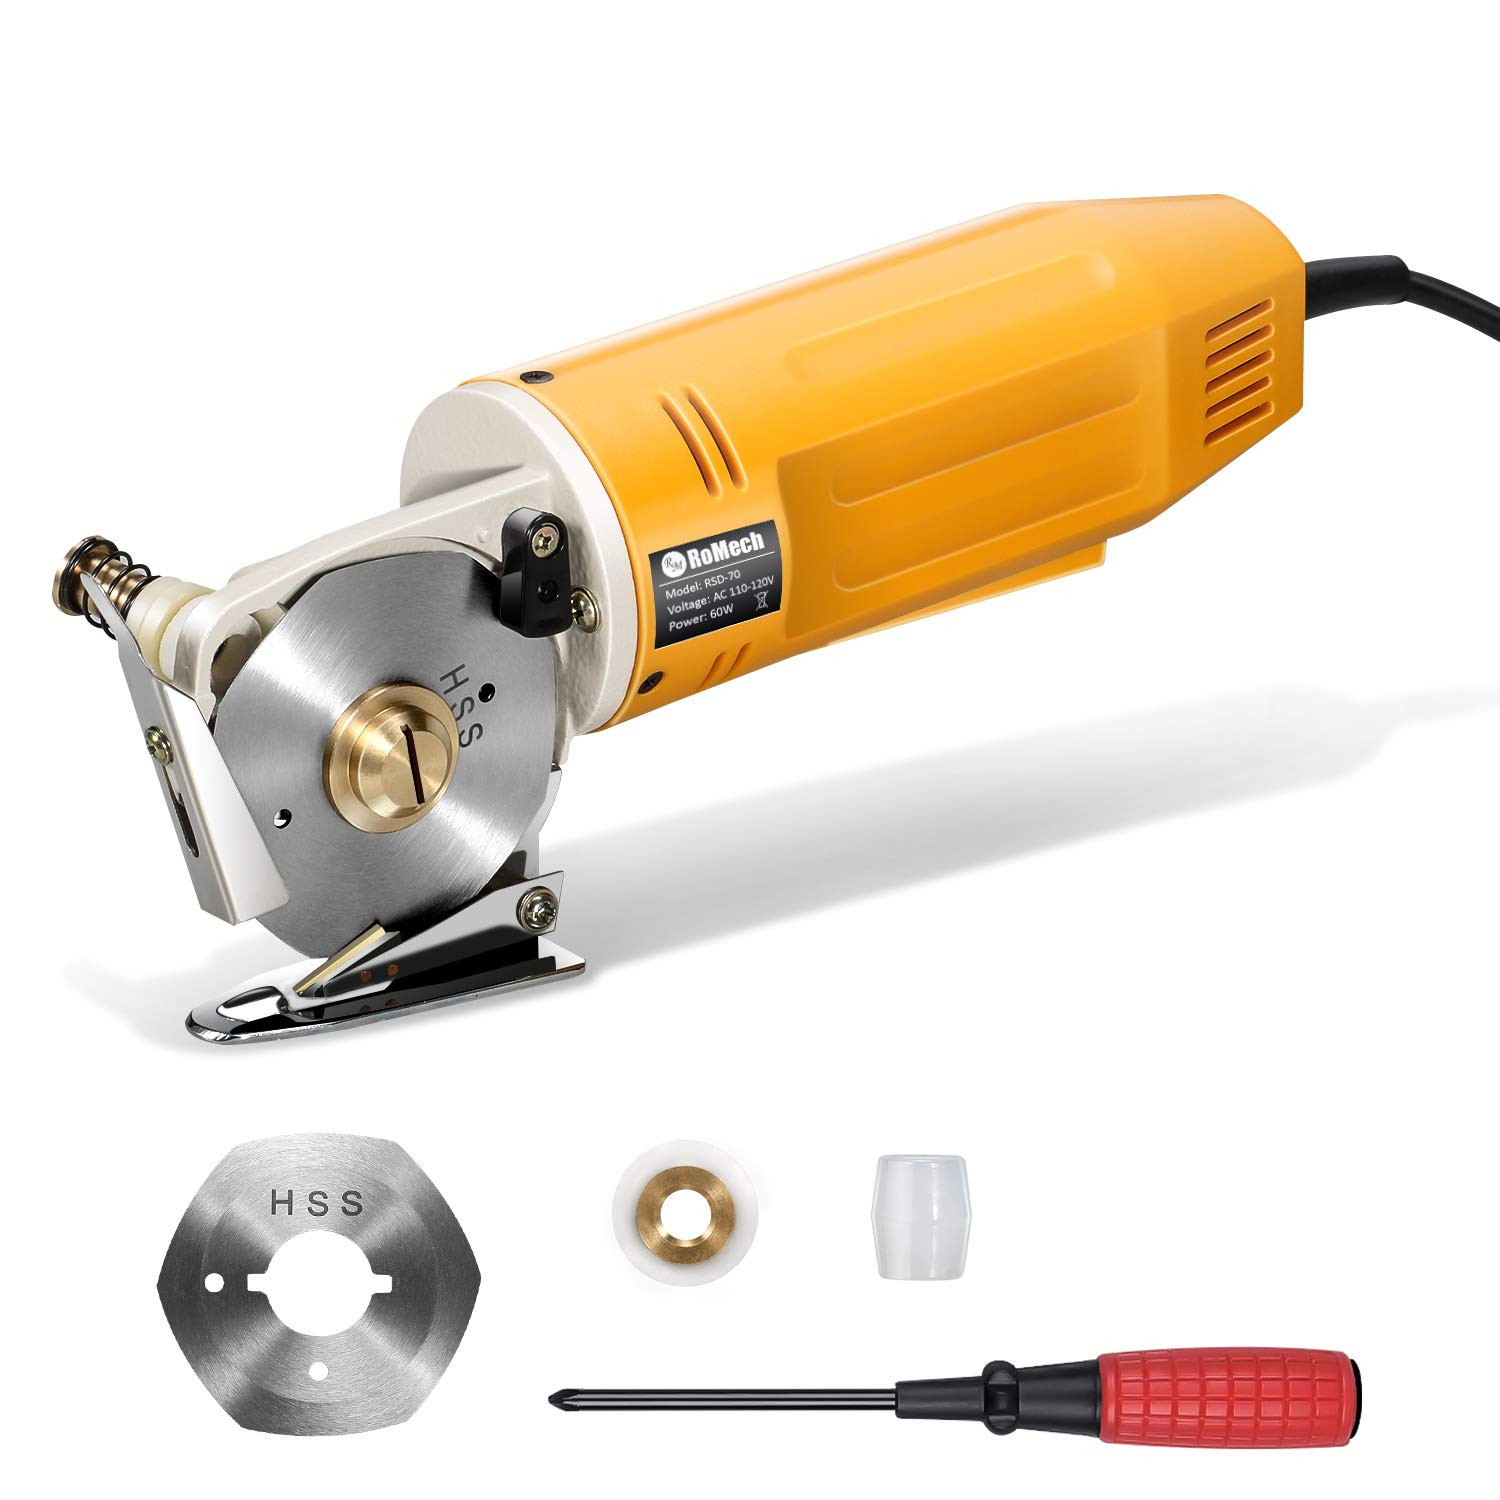 RoMech Mini Electric Cloth Cutter, Rotary Blade Fabric Cutting Machine, Octagonal Knife, Electric Rotary Scissors for Multi Layer Leather Wool